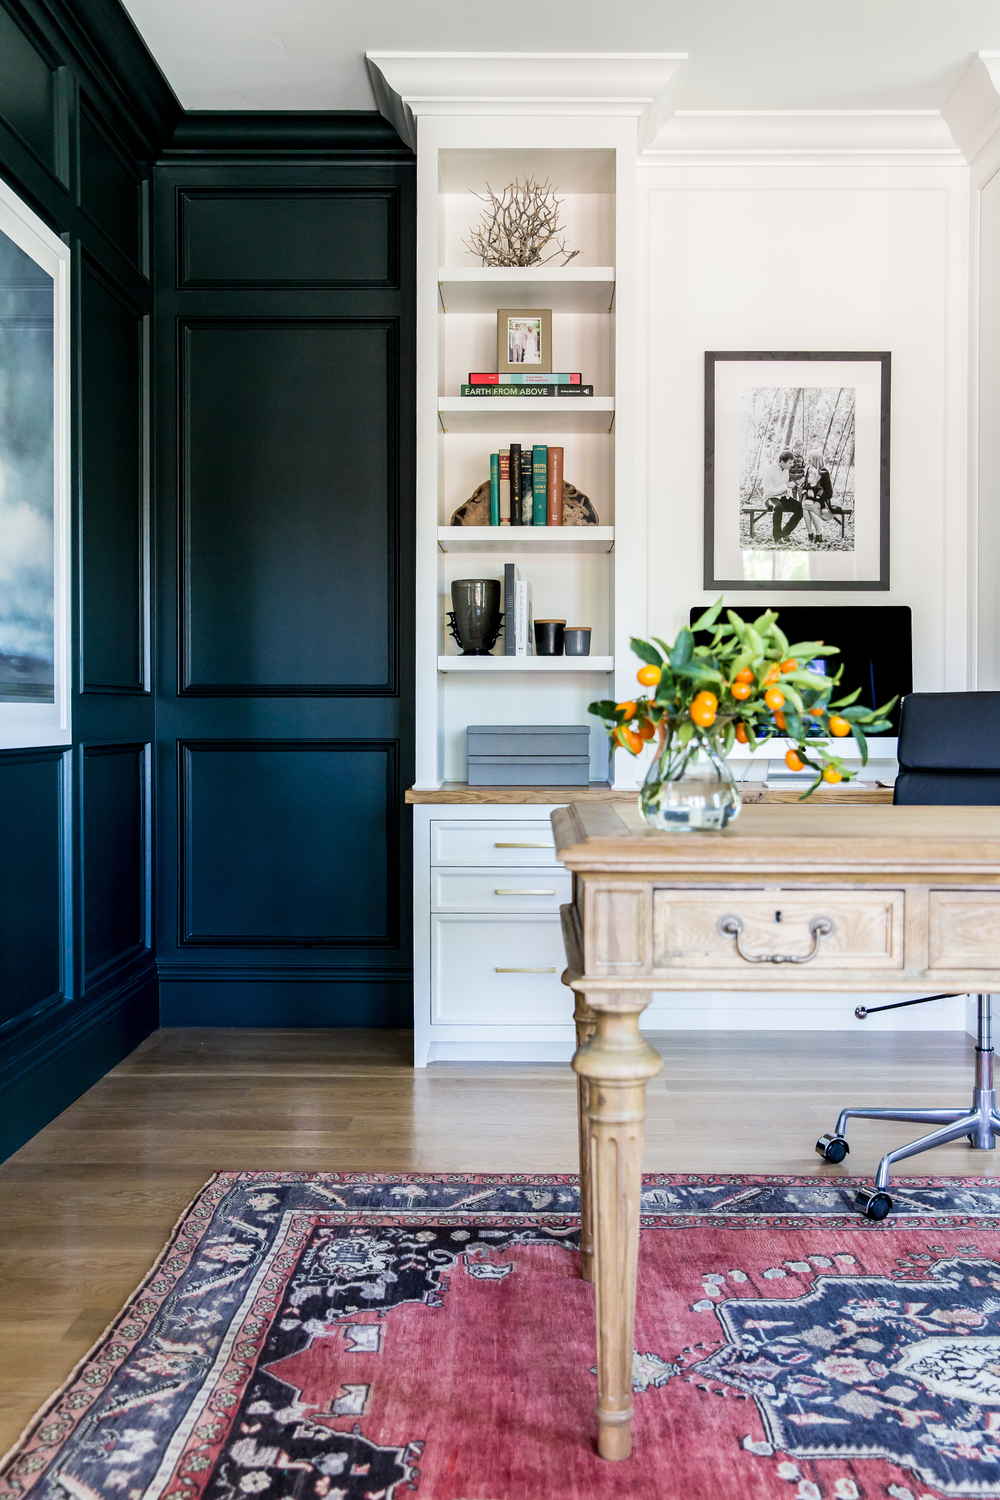 Modern office with bold color and built-in cabinets.